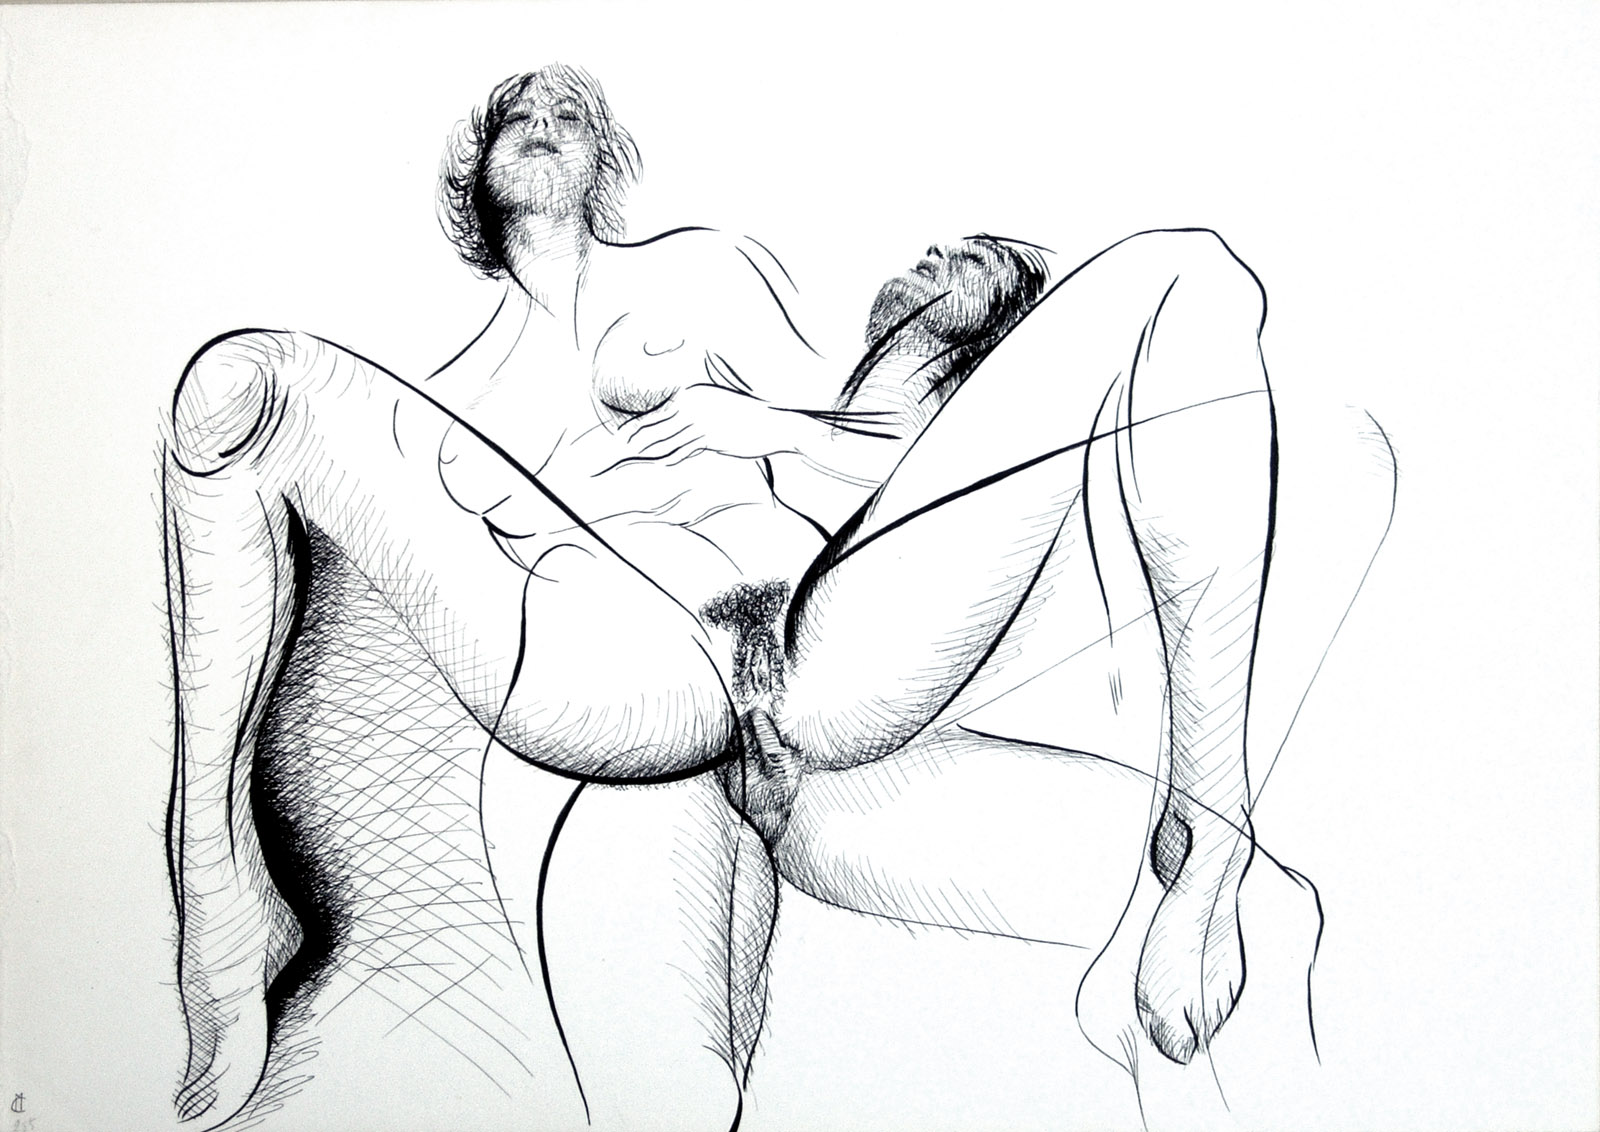 Porno drawings adult film